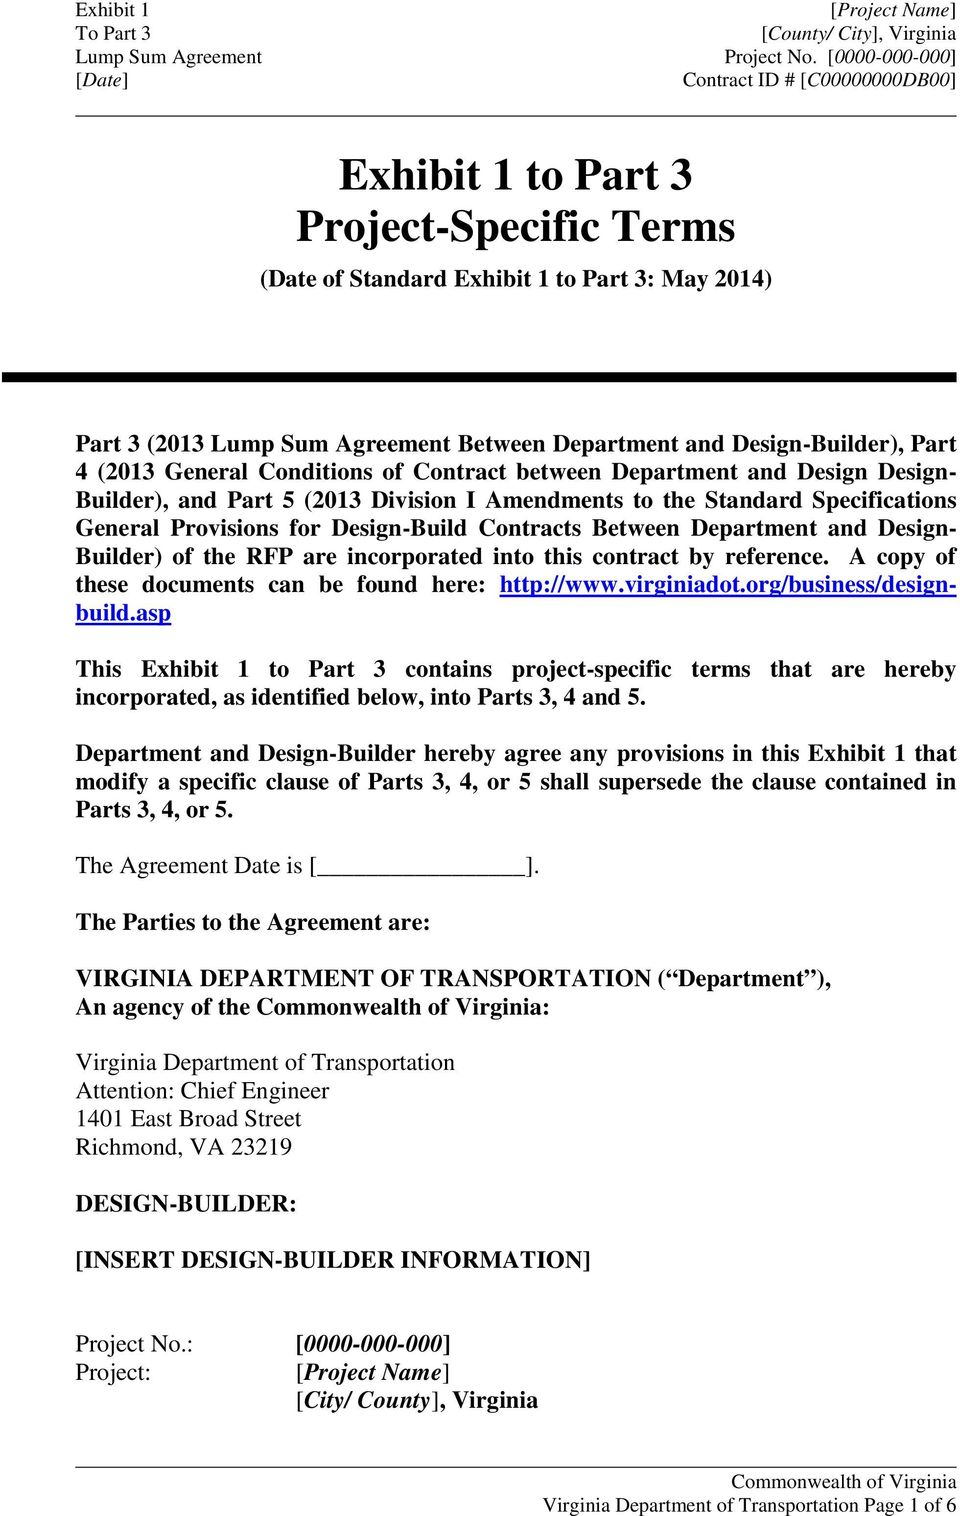 Design- Builder) of the RFP are incorporated into this contract by reference. A copy of these documents can be found here: http://www.virginiadot.org/business/designbuild.